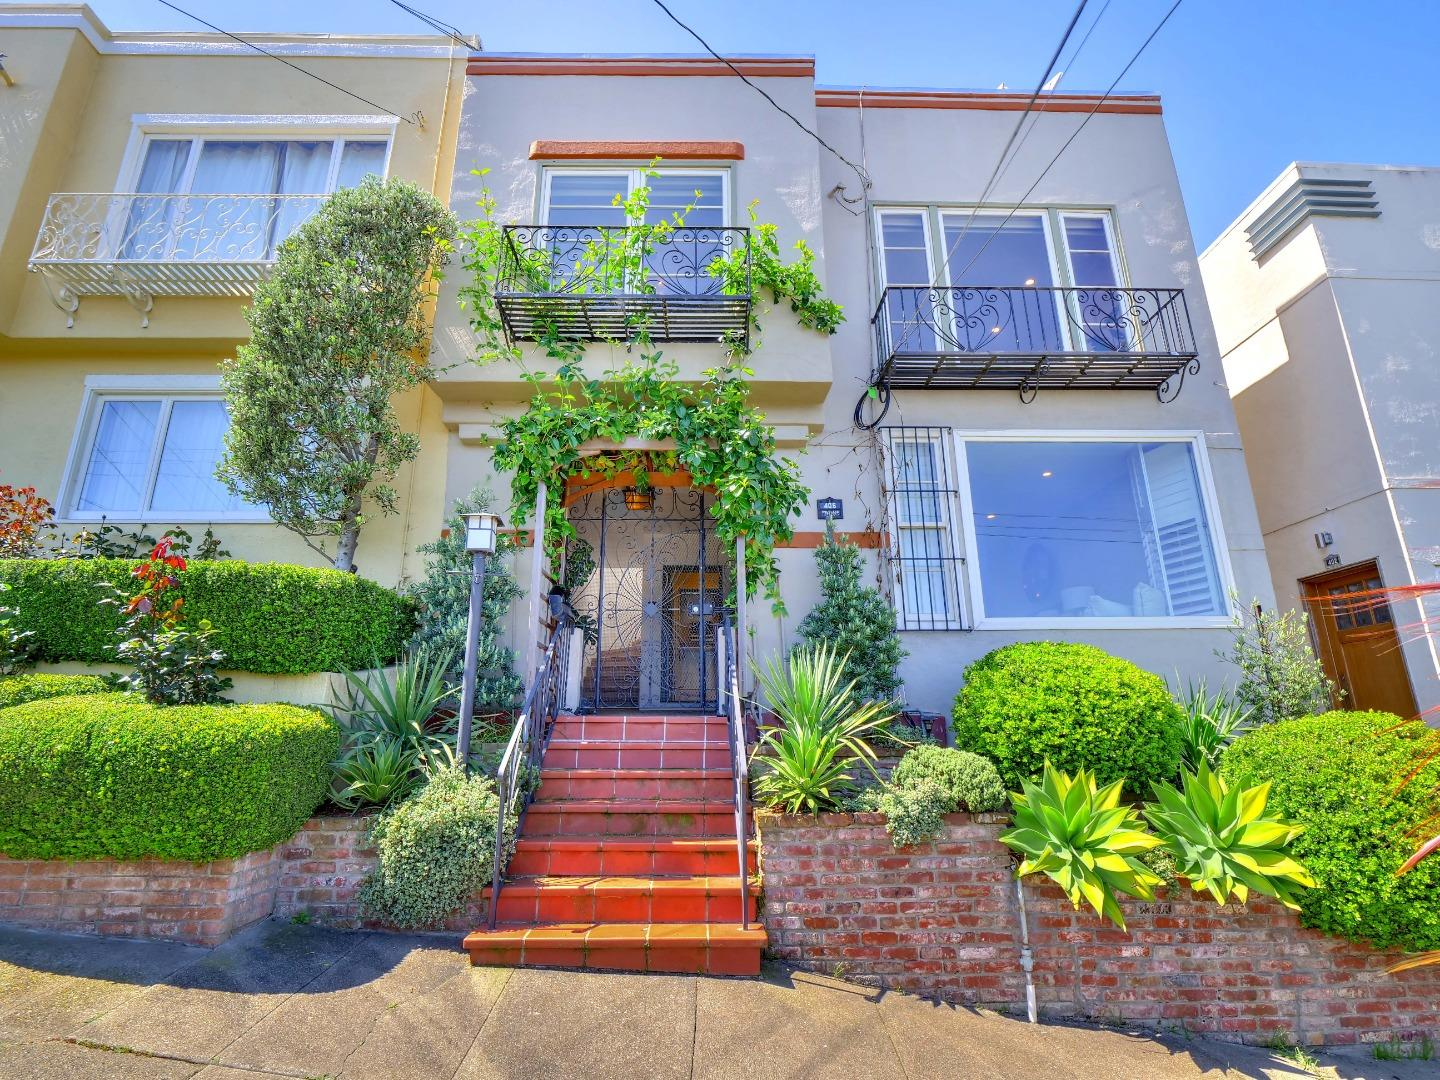 Photo of  406 Douglass Street San Francisco 94114